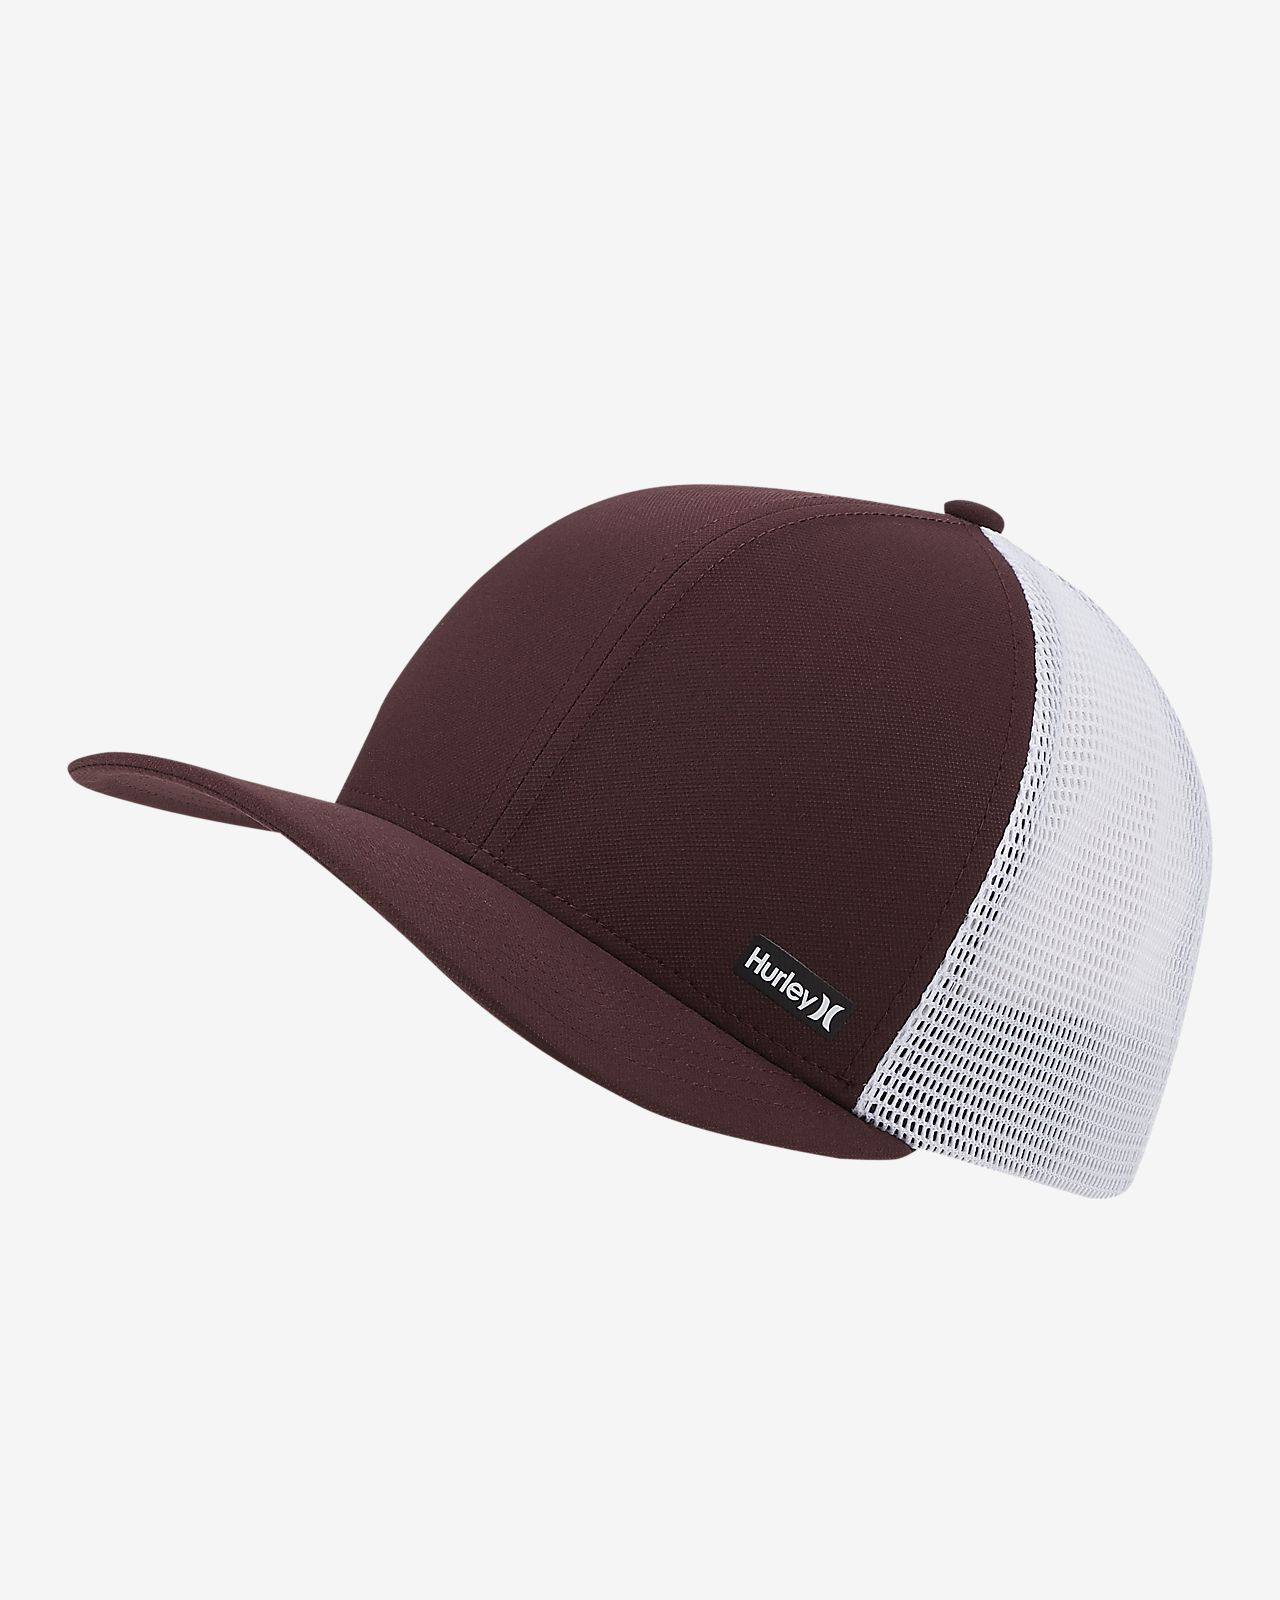 Cappello Hurley League - Uomo